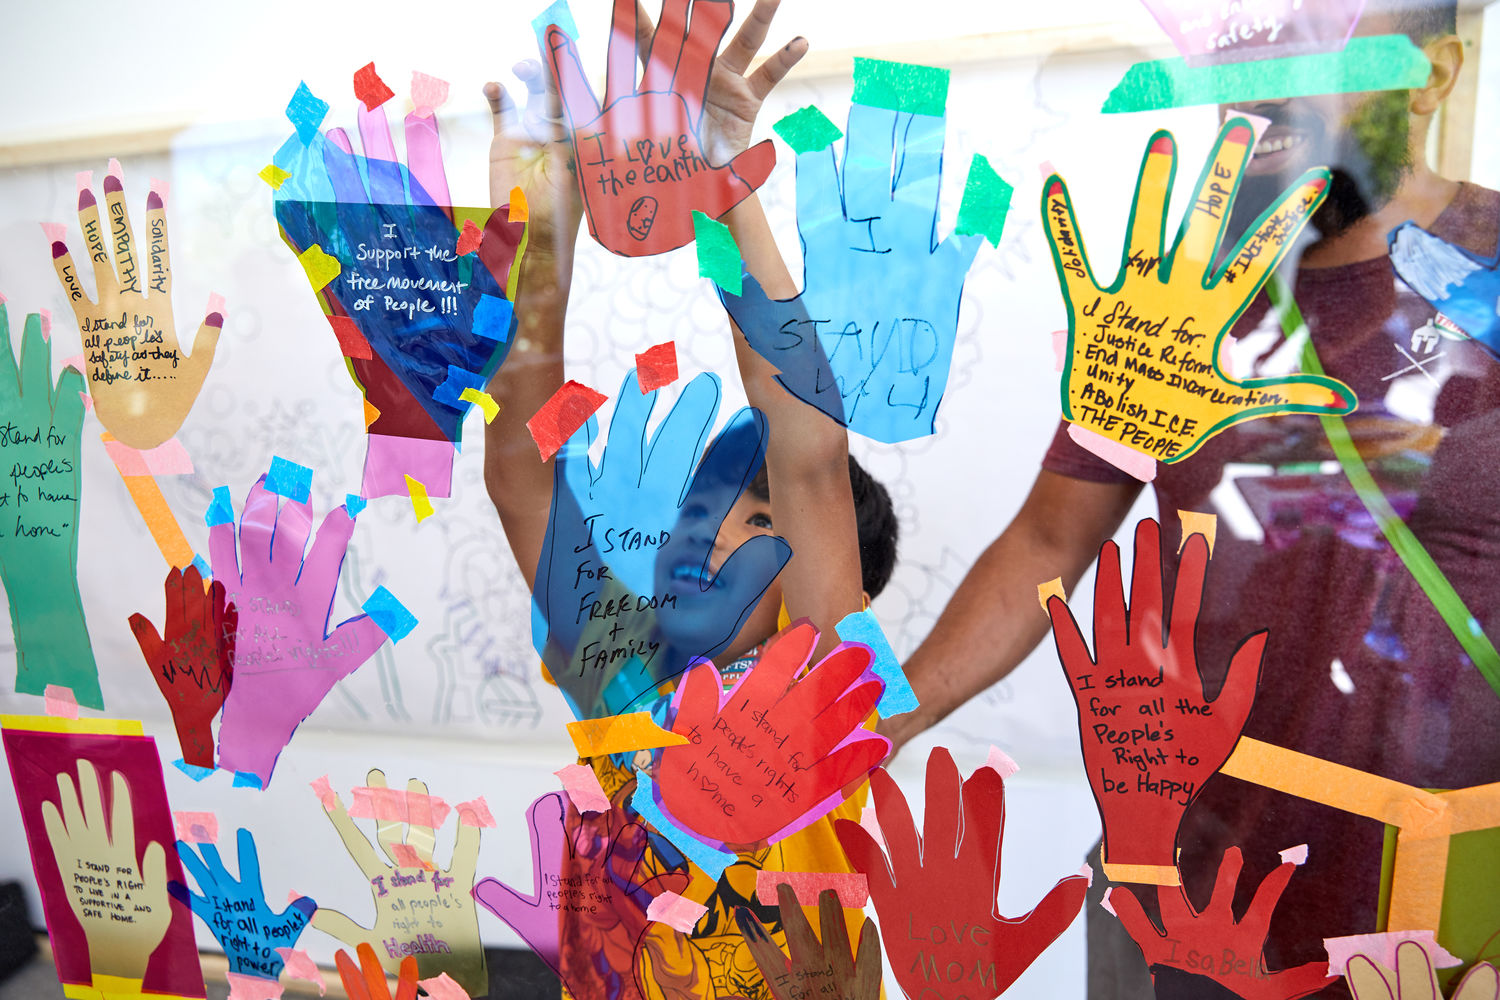 A child presses his hands to a glass covered in paper hand cut-outs